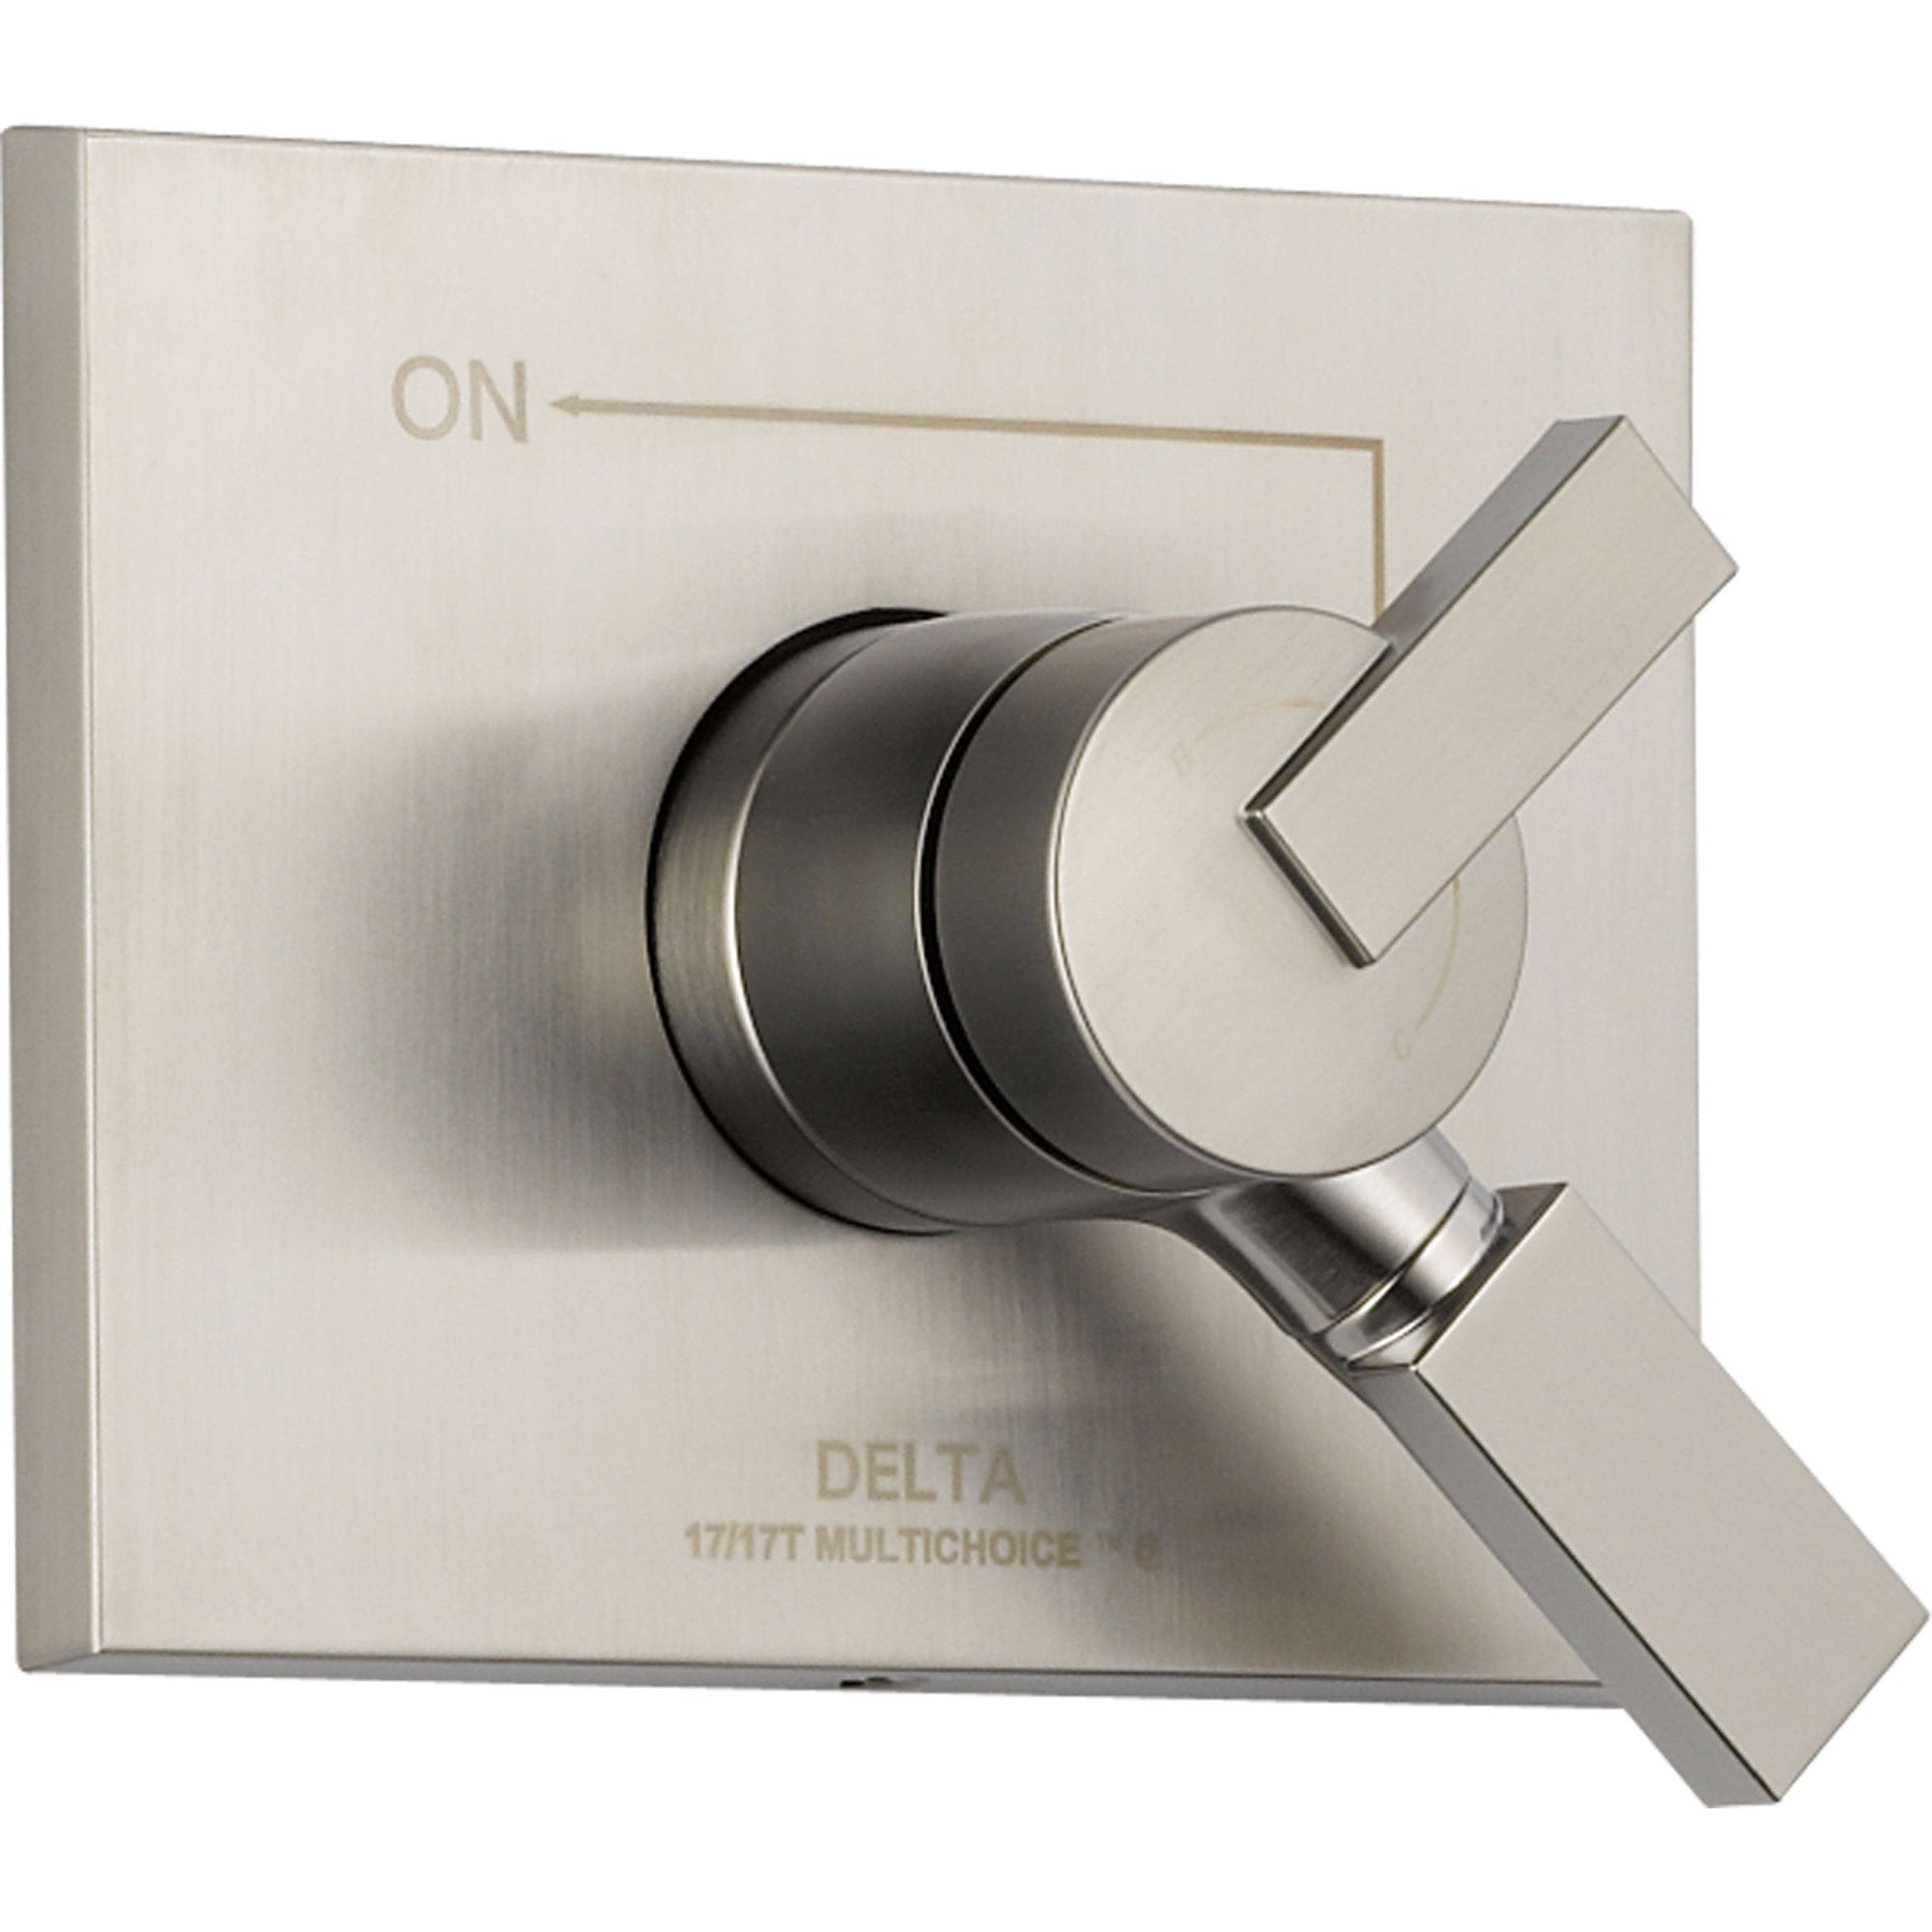 Delta Temperature & Volume Control Stainless Steel Finish Shower w/ Valve D086V